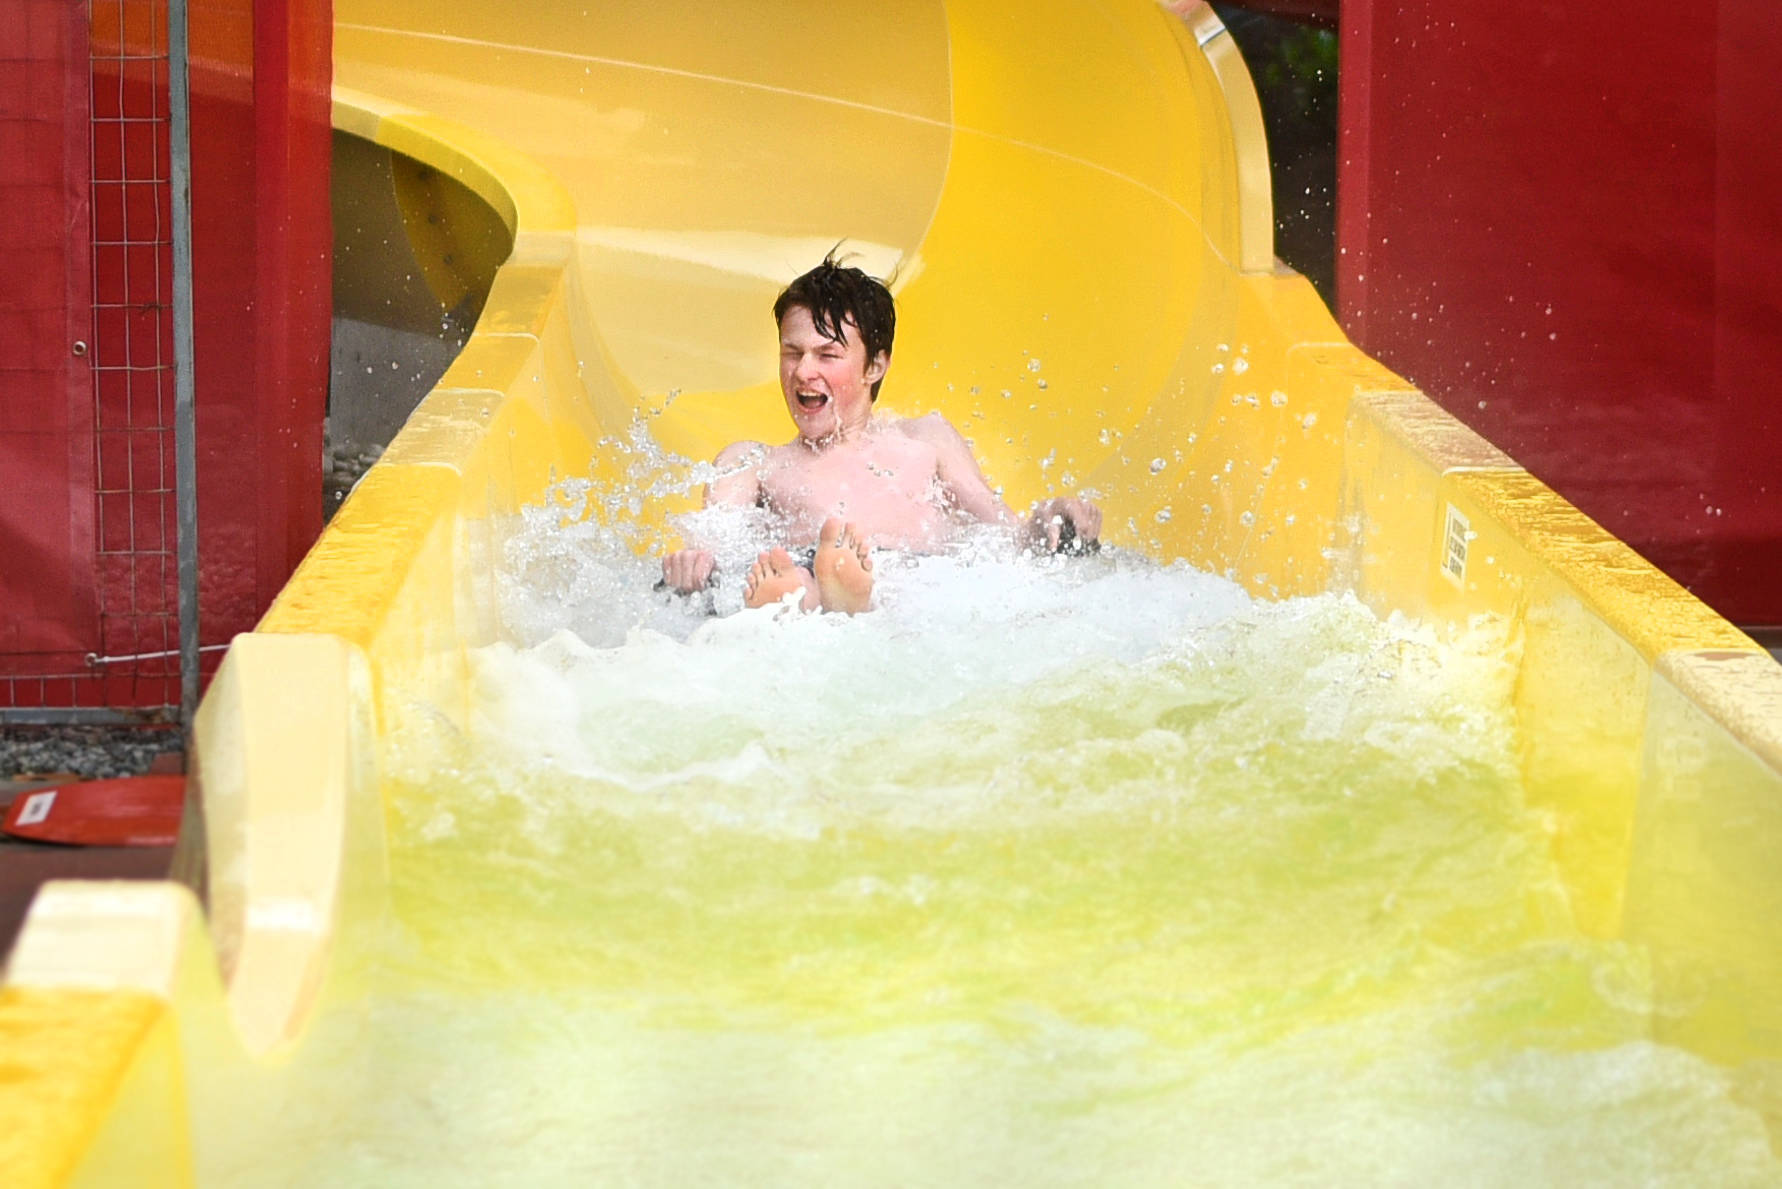 It's been a while since anyone got to use the slides at Aldergrove's pool, but the Outdoor Experience Waterpark could be up and running again by July. (Langley Advance Times files)